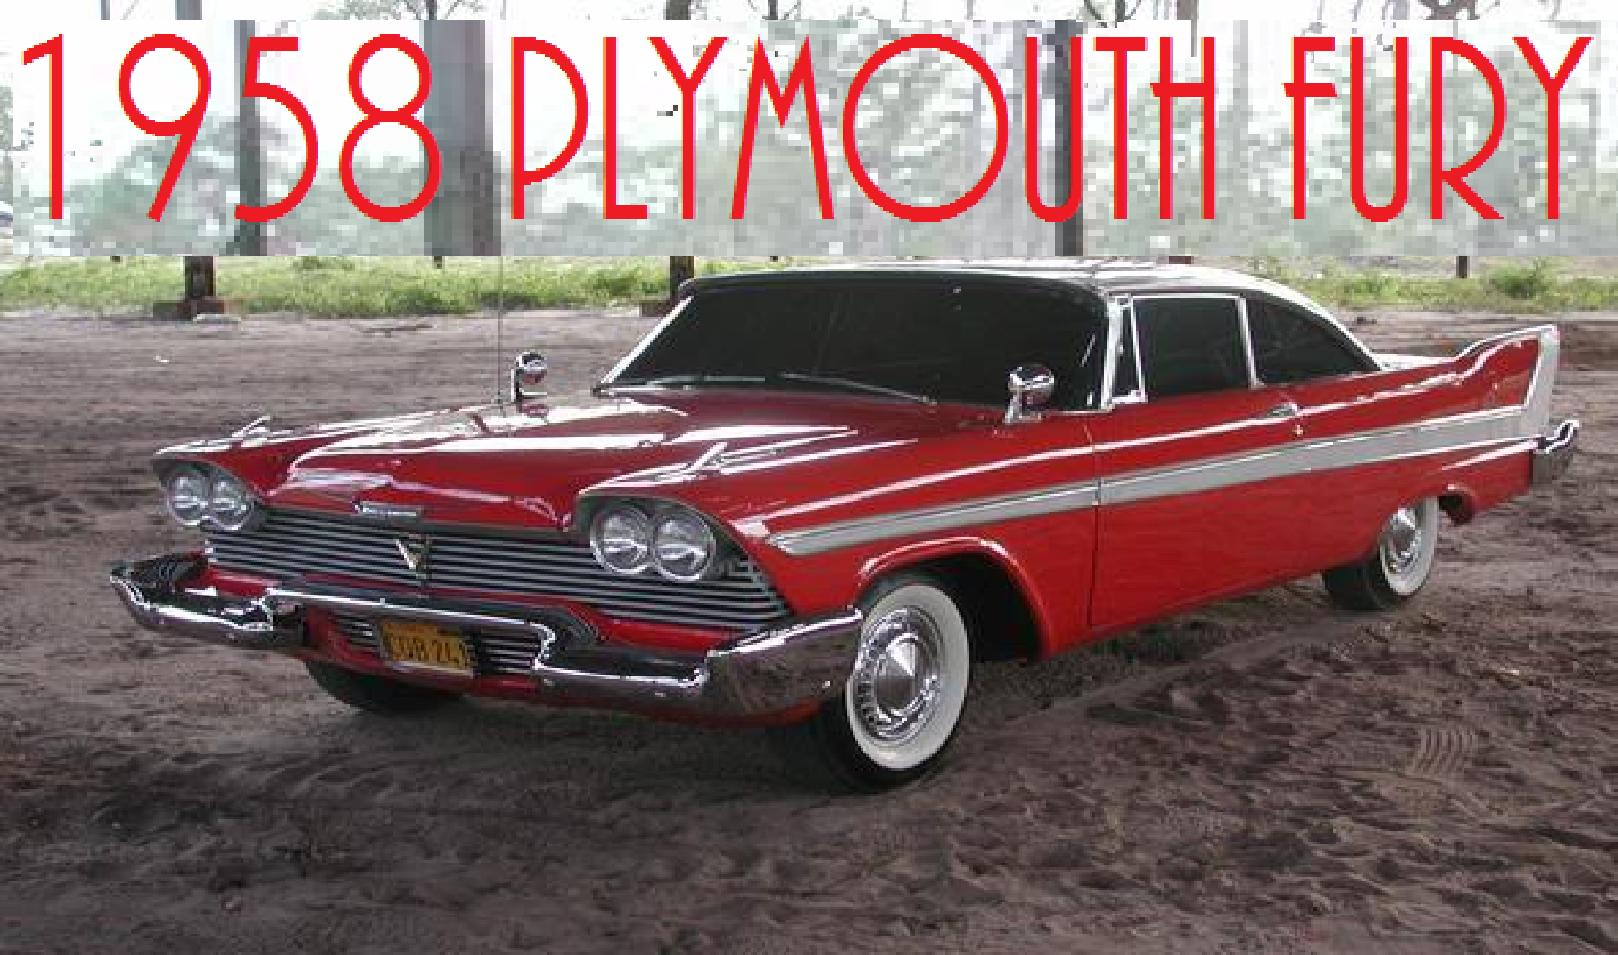 The 58 plymouth fury car number two on my wish list christine she